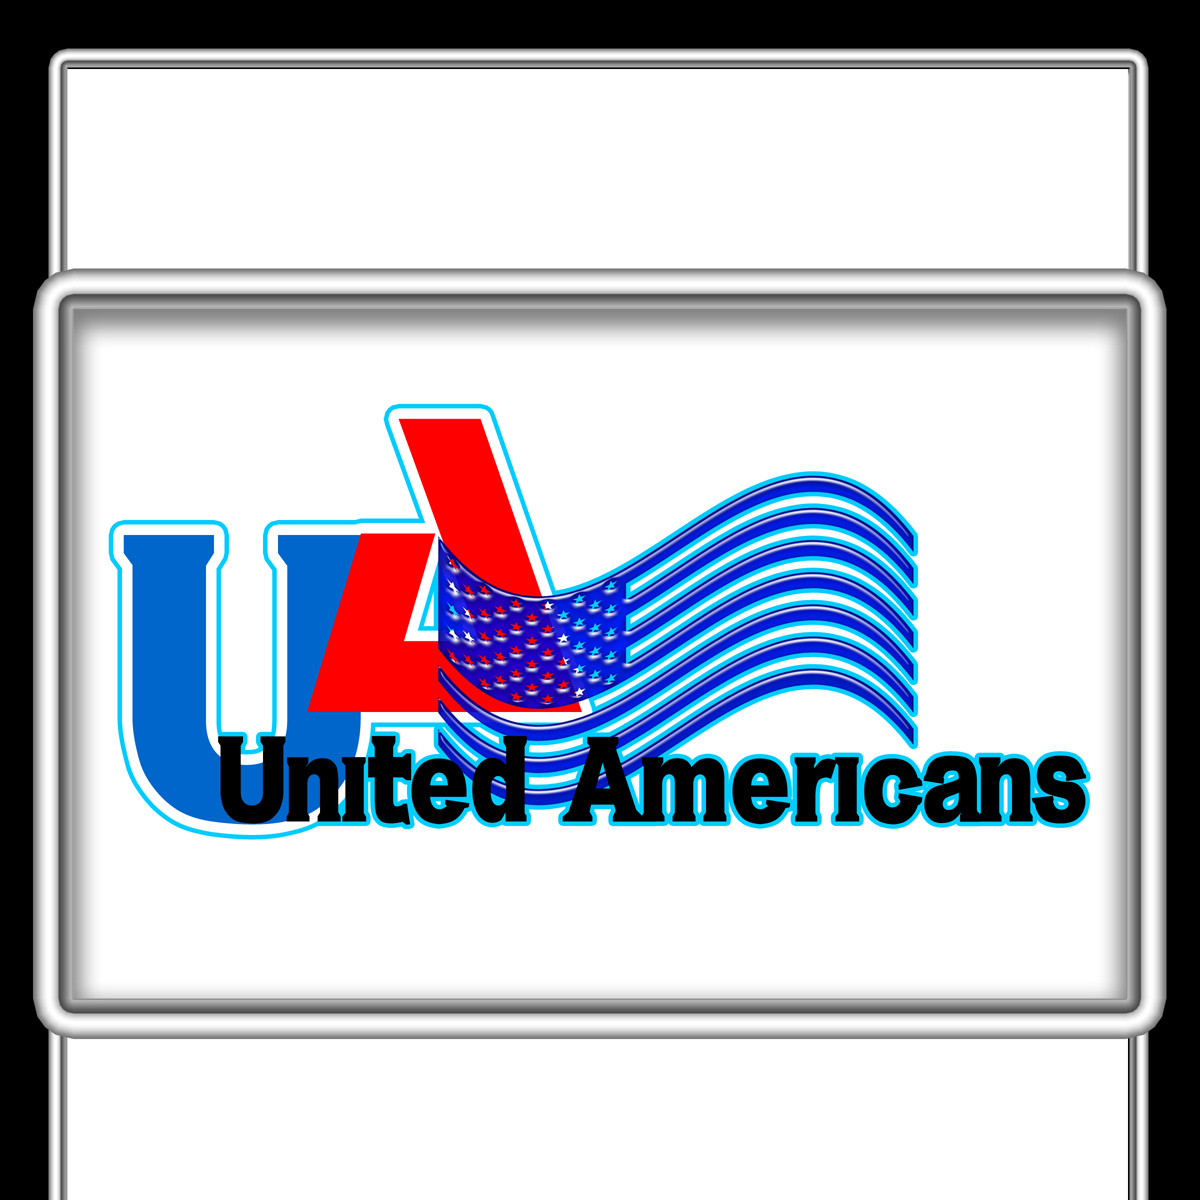 Logo Design by MITUCA ANDREI - Entry No. 16 in the Logo Design Contest Creative Logo Design for United Americans.